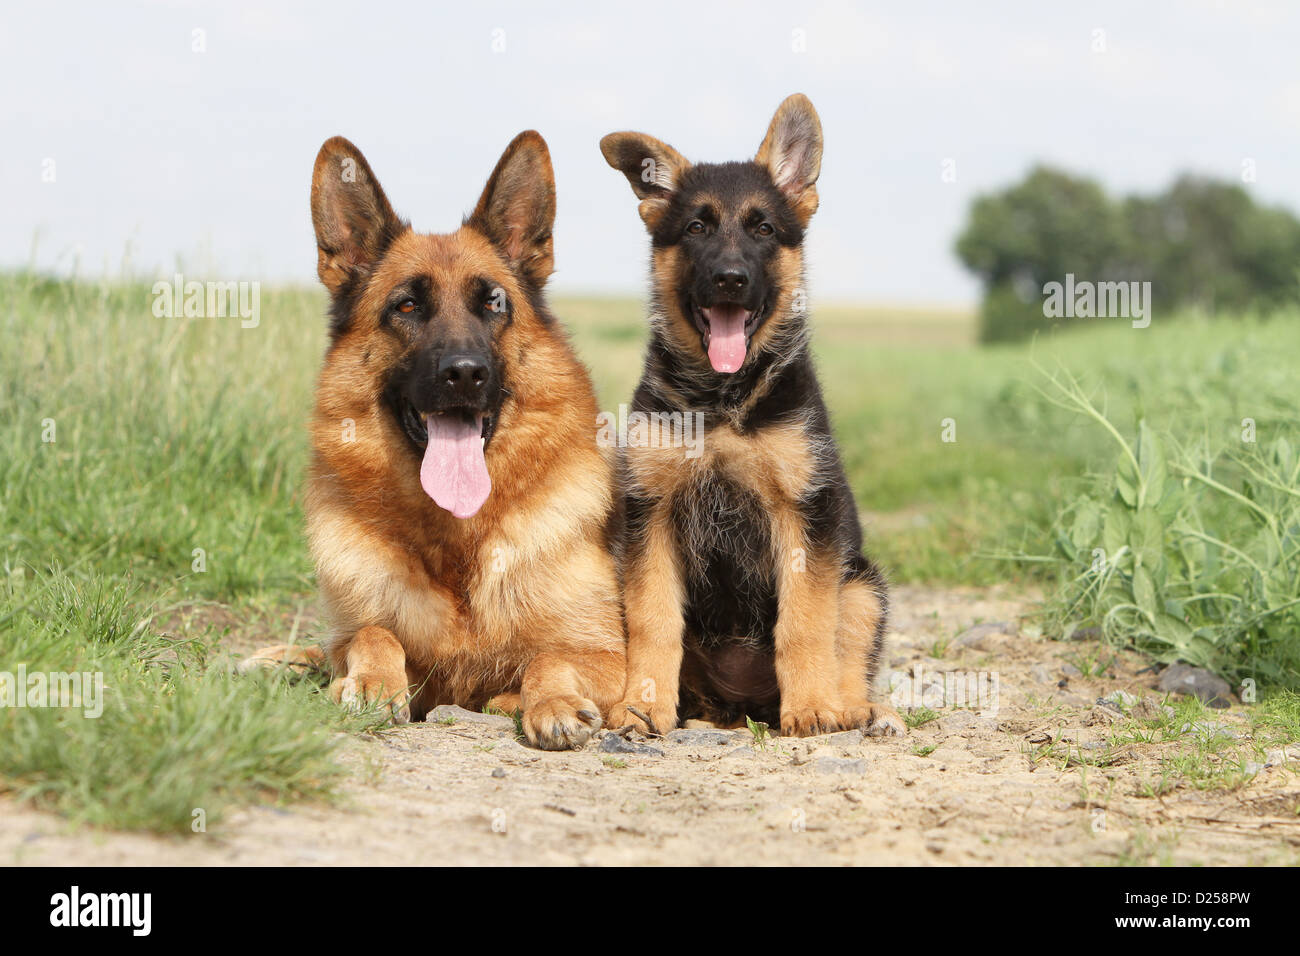 German Shepherd Puppies Mother High Resolution Stock Photography And Images Alamy